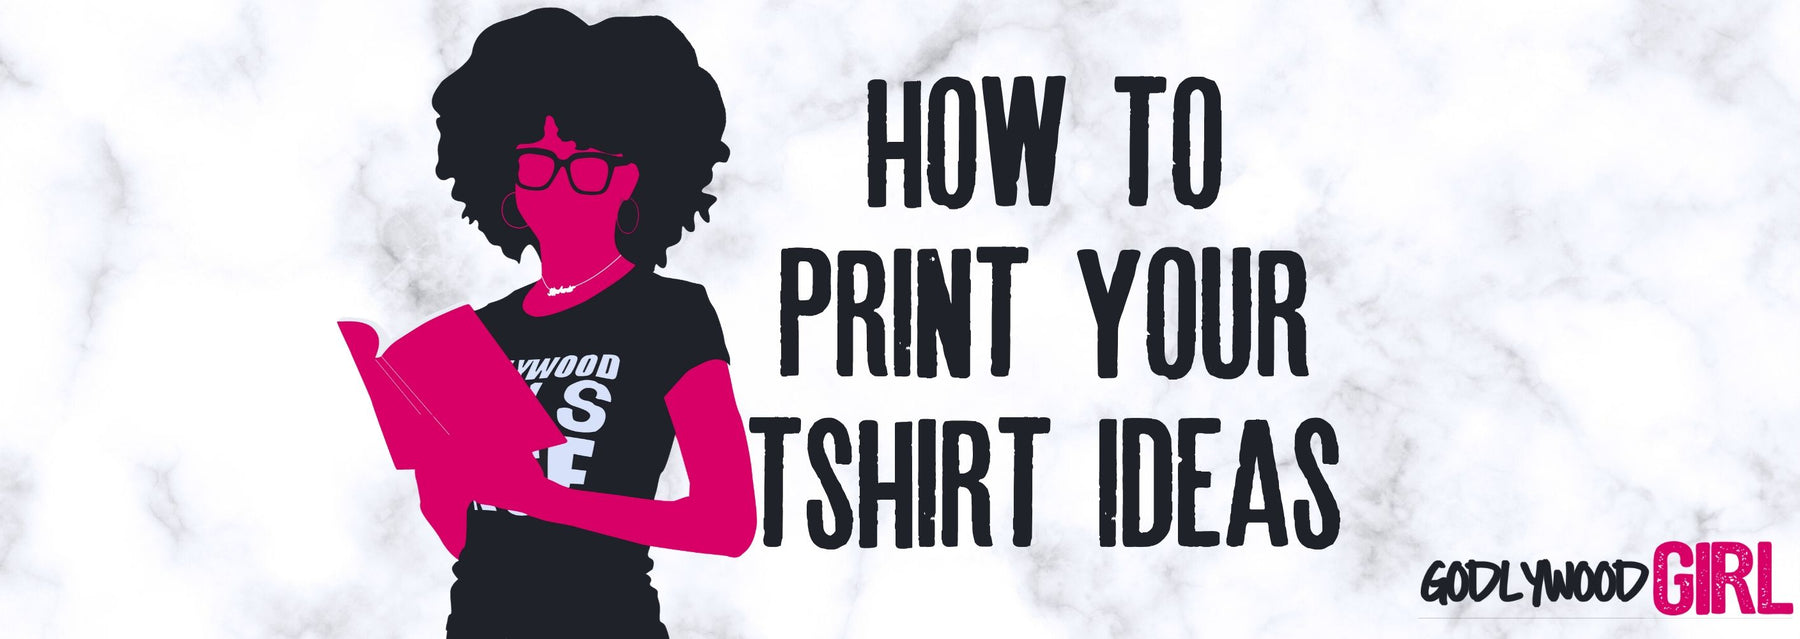 T SHIRT BUSINESS 2020 | How To Print Your T Shirt Ideas (Christian Entrepreneur)